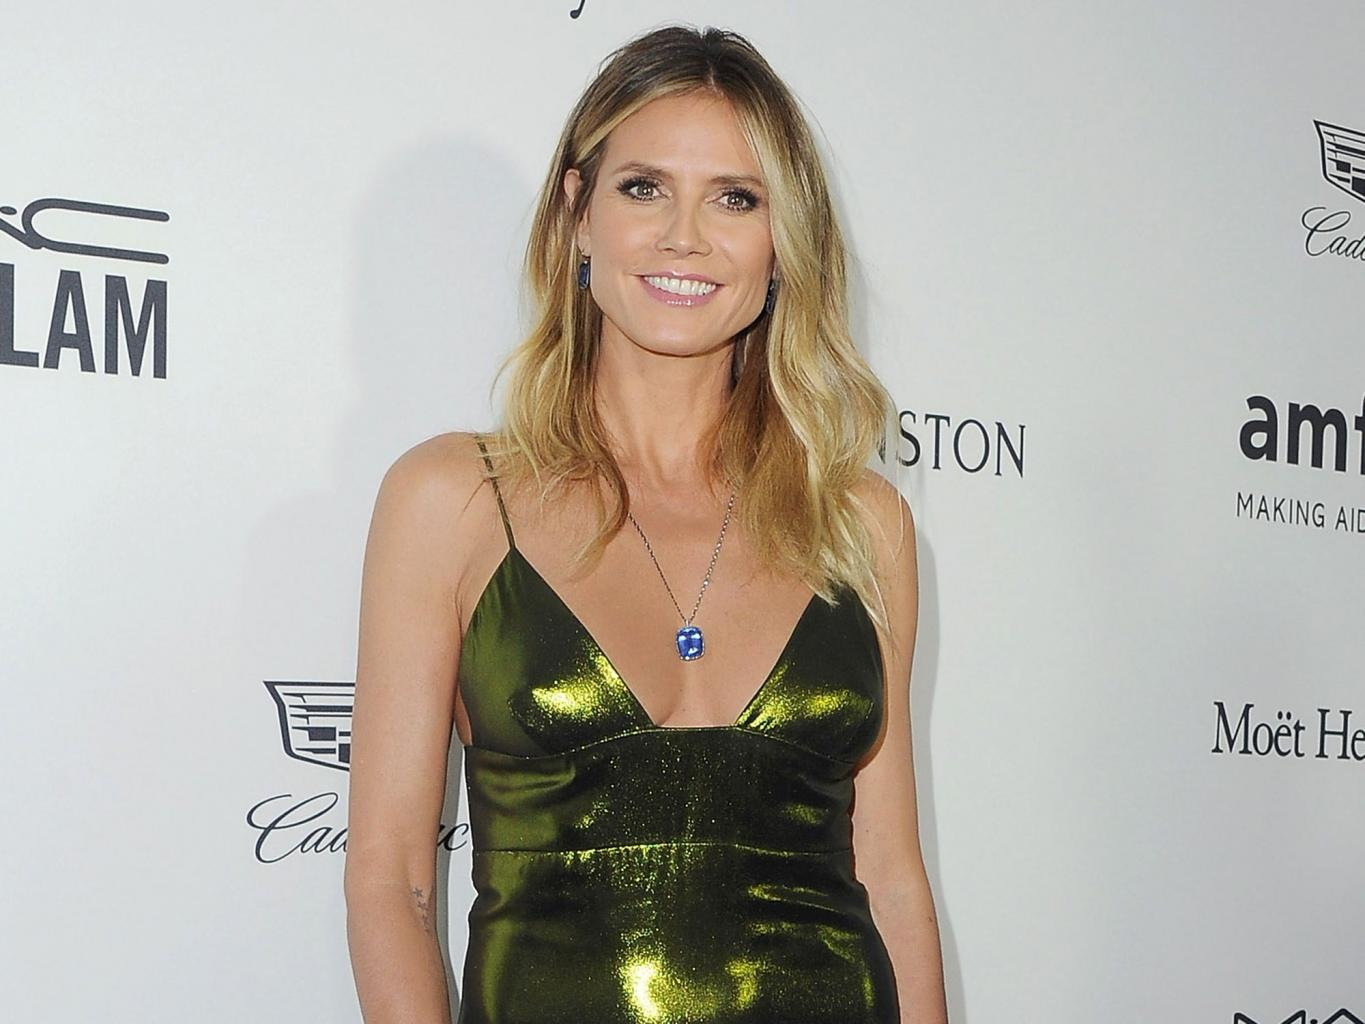 Heidi Klum Vows to Be Topless on the Beach at 60: 'It's Just Who I Am'